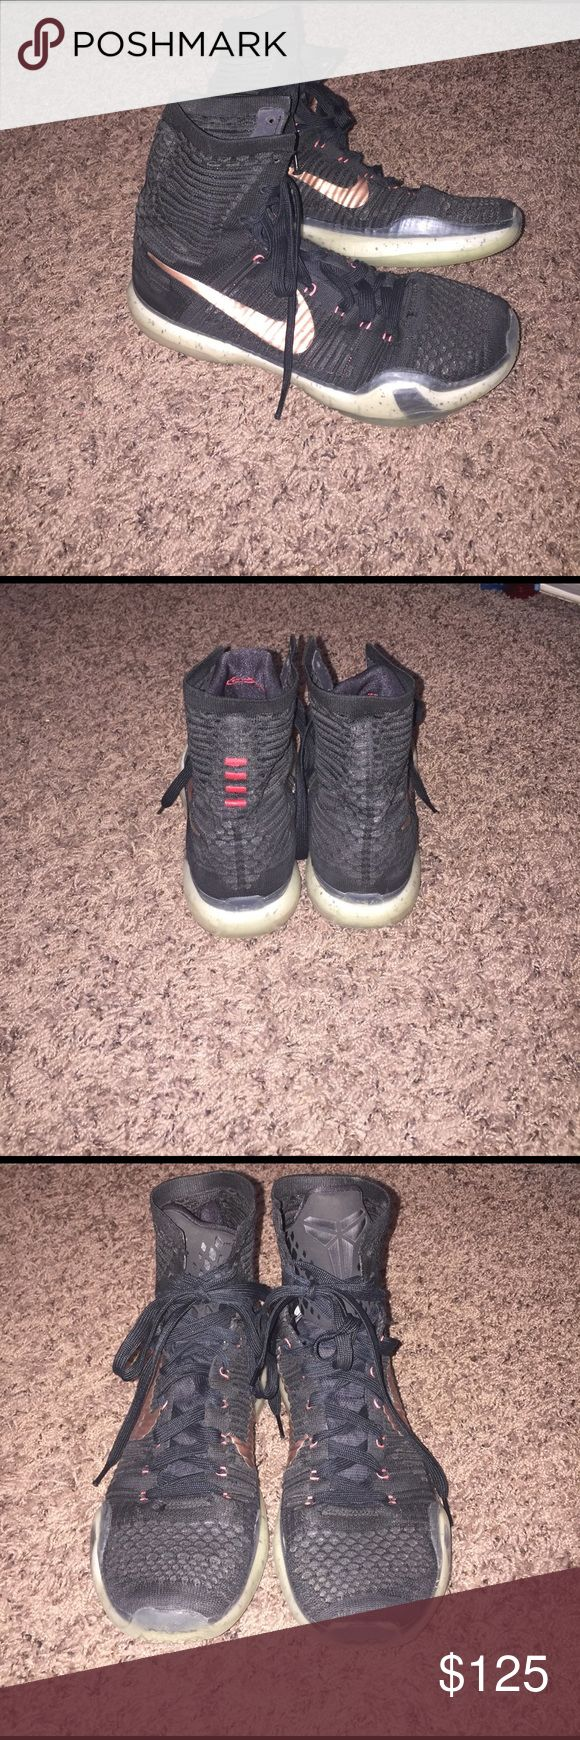 Nike Kobe X Elite Rose Gold Basketball Shoes Nike Kobe X Elite Rose Gold Basketball shoes. Black and bronze. High top, size 9.  Worn one season of basketball, in excellent condition. Never worn outside. Nike Shoes Sneakers